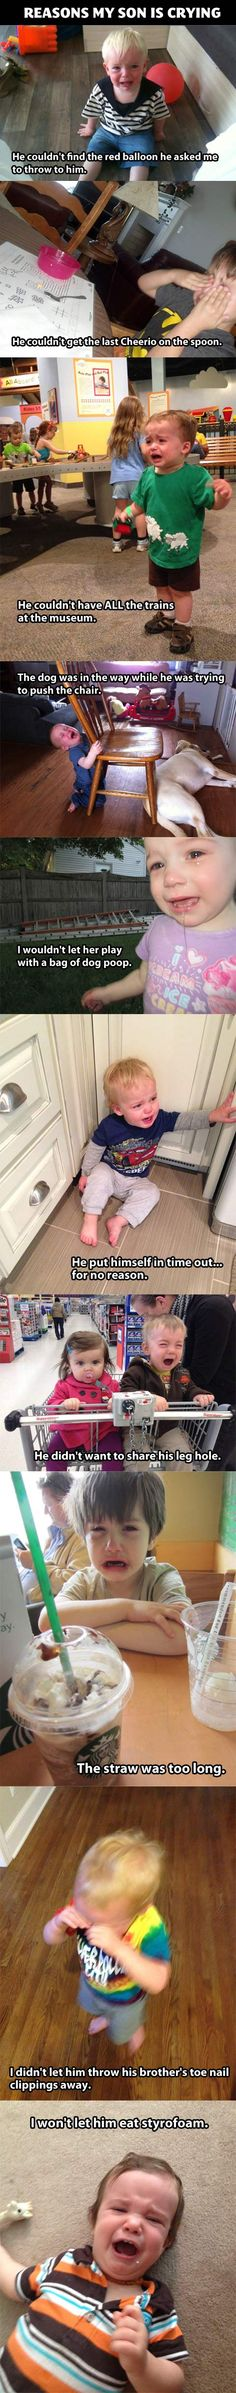 Reasons my son is crying... god, funni, 2 year olds, thought, children, parent, son, toddler, kid